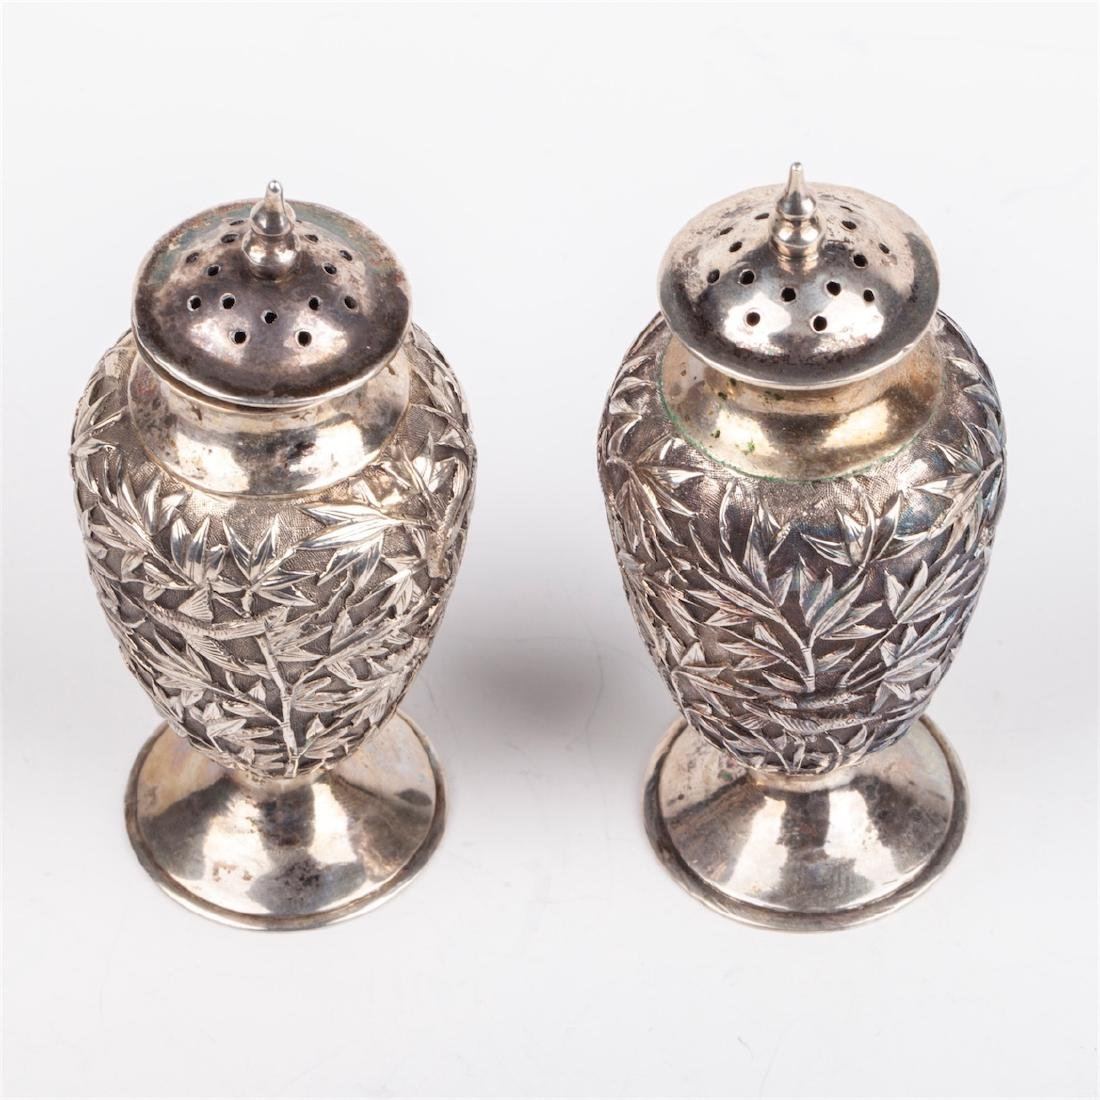 A pair of antique silver salt cellars with floral - 4